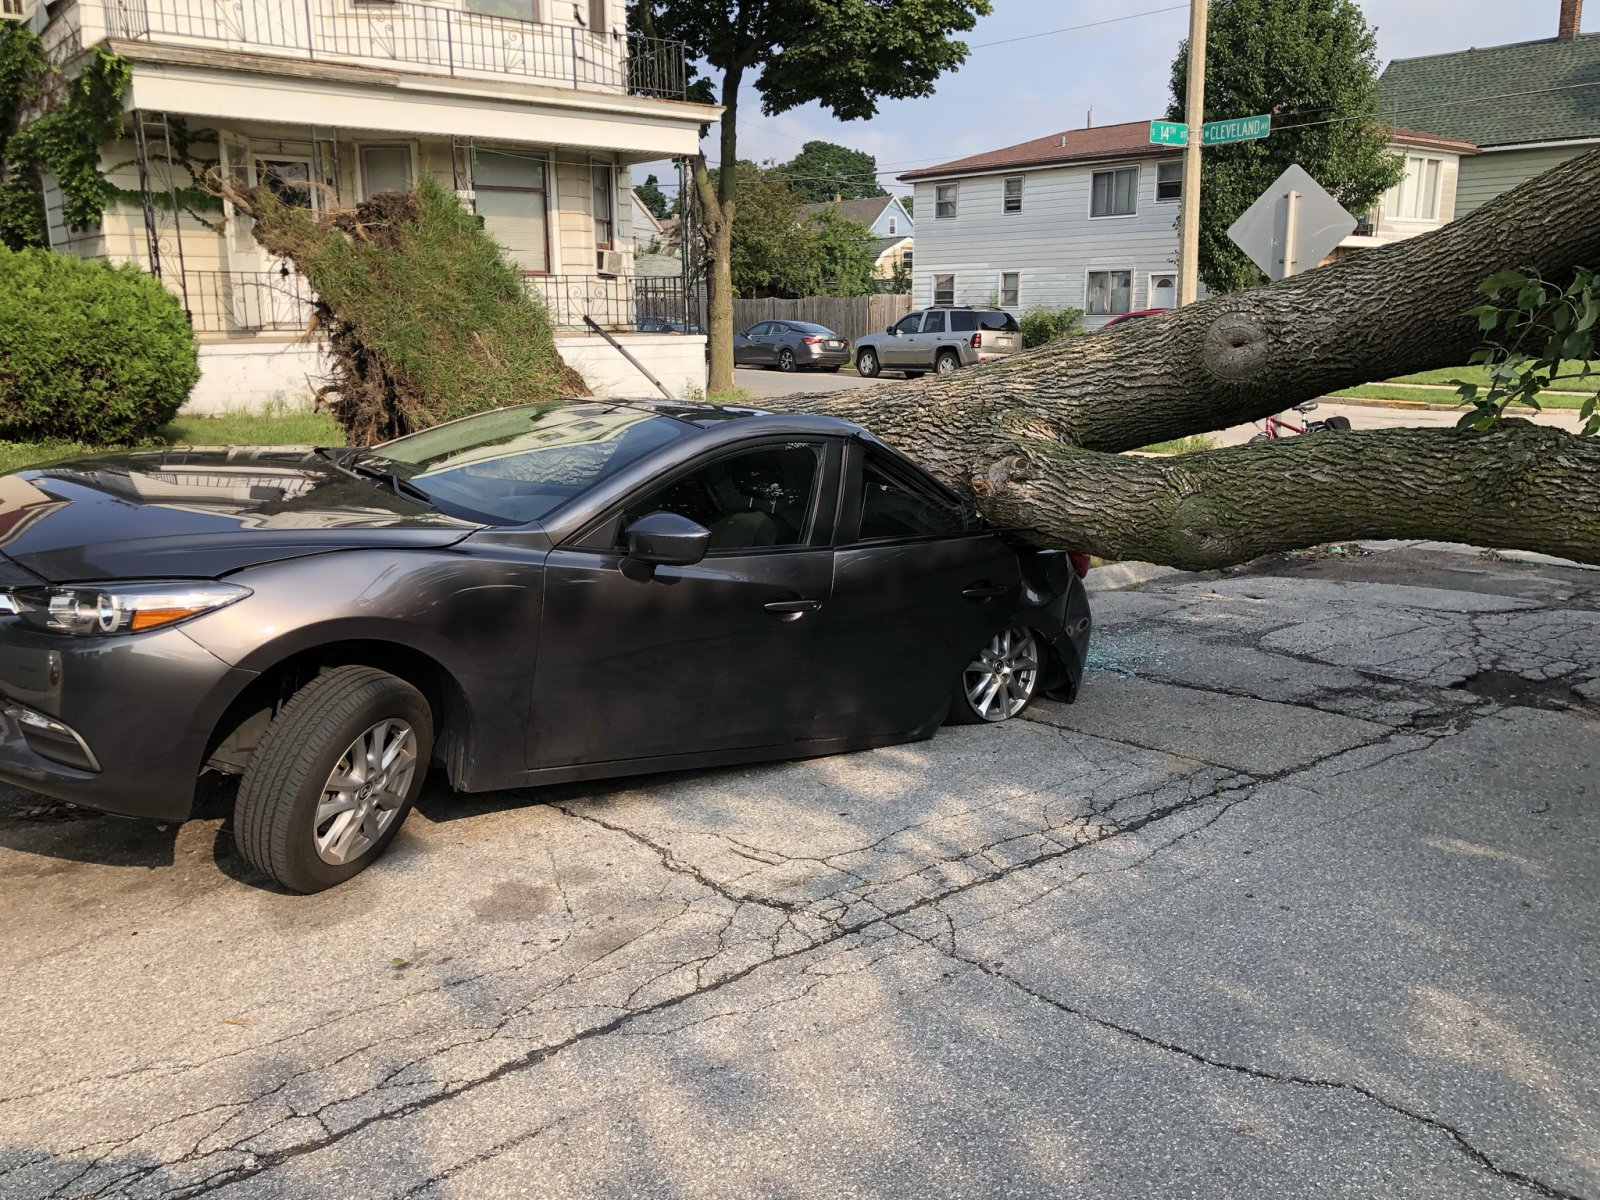 Tree Atop Car on S. 14th St.